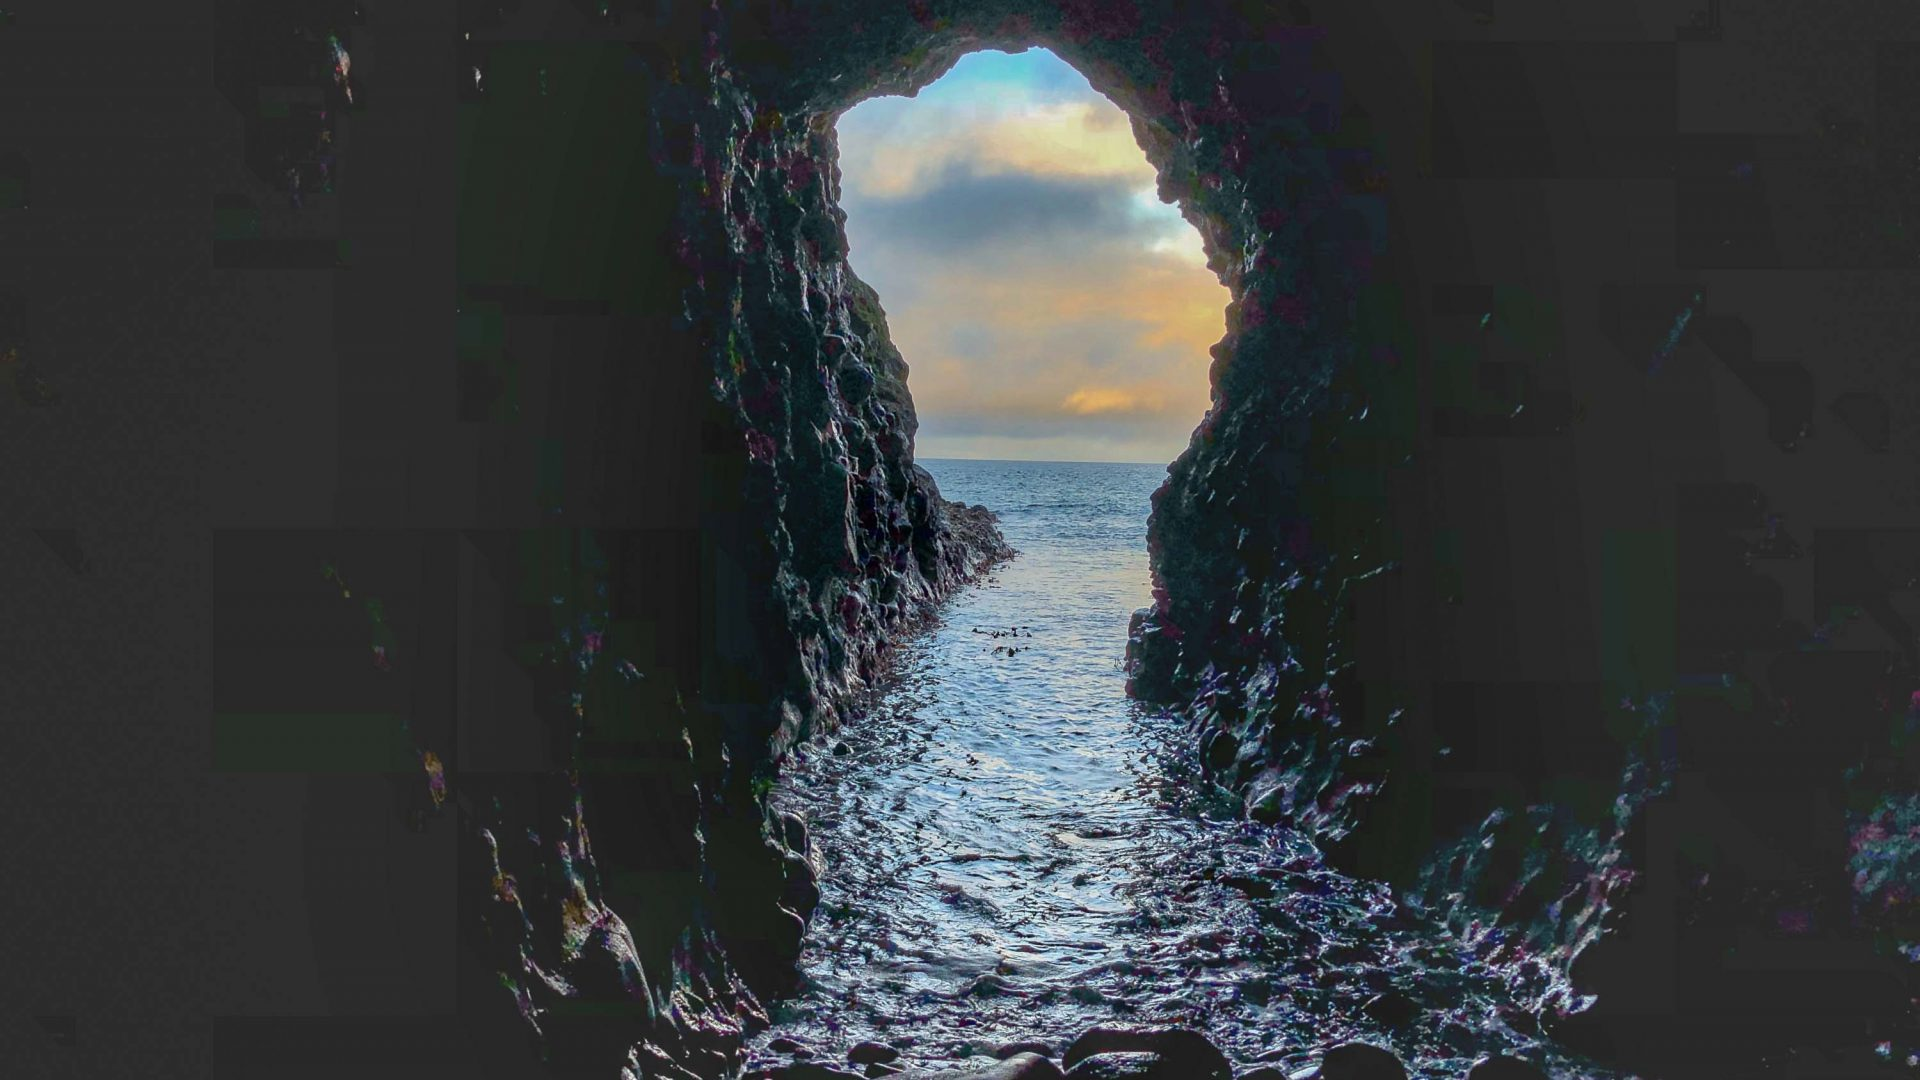 A smuggler's cave below Dunluce Castle on the north coast of Ireland.